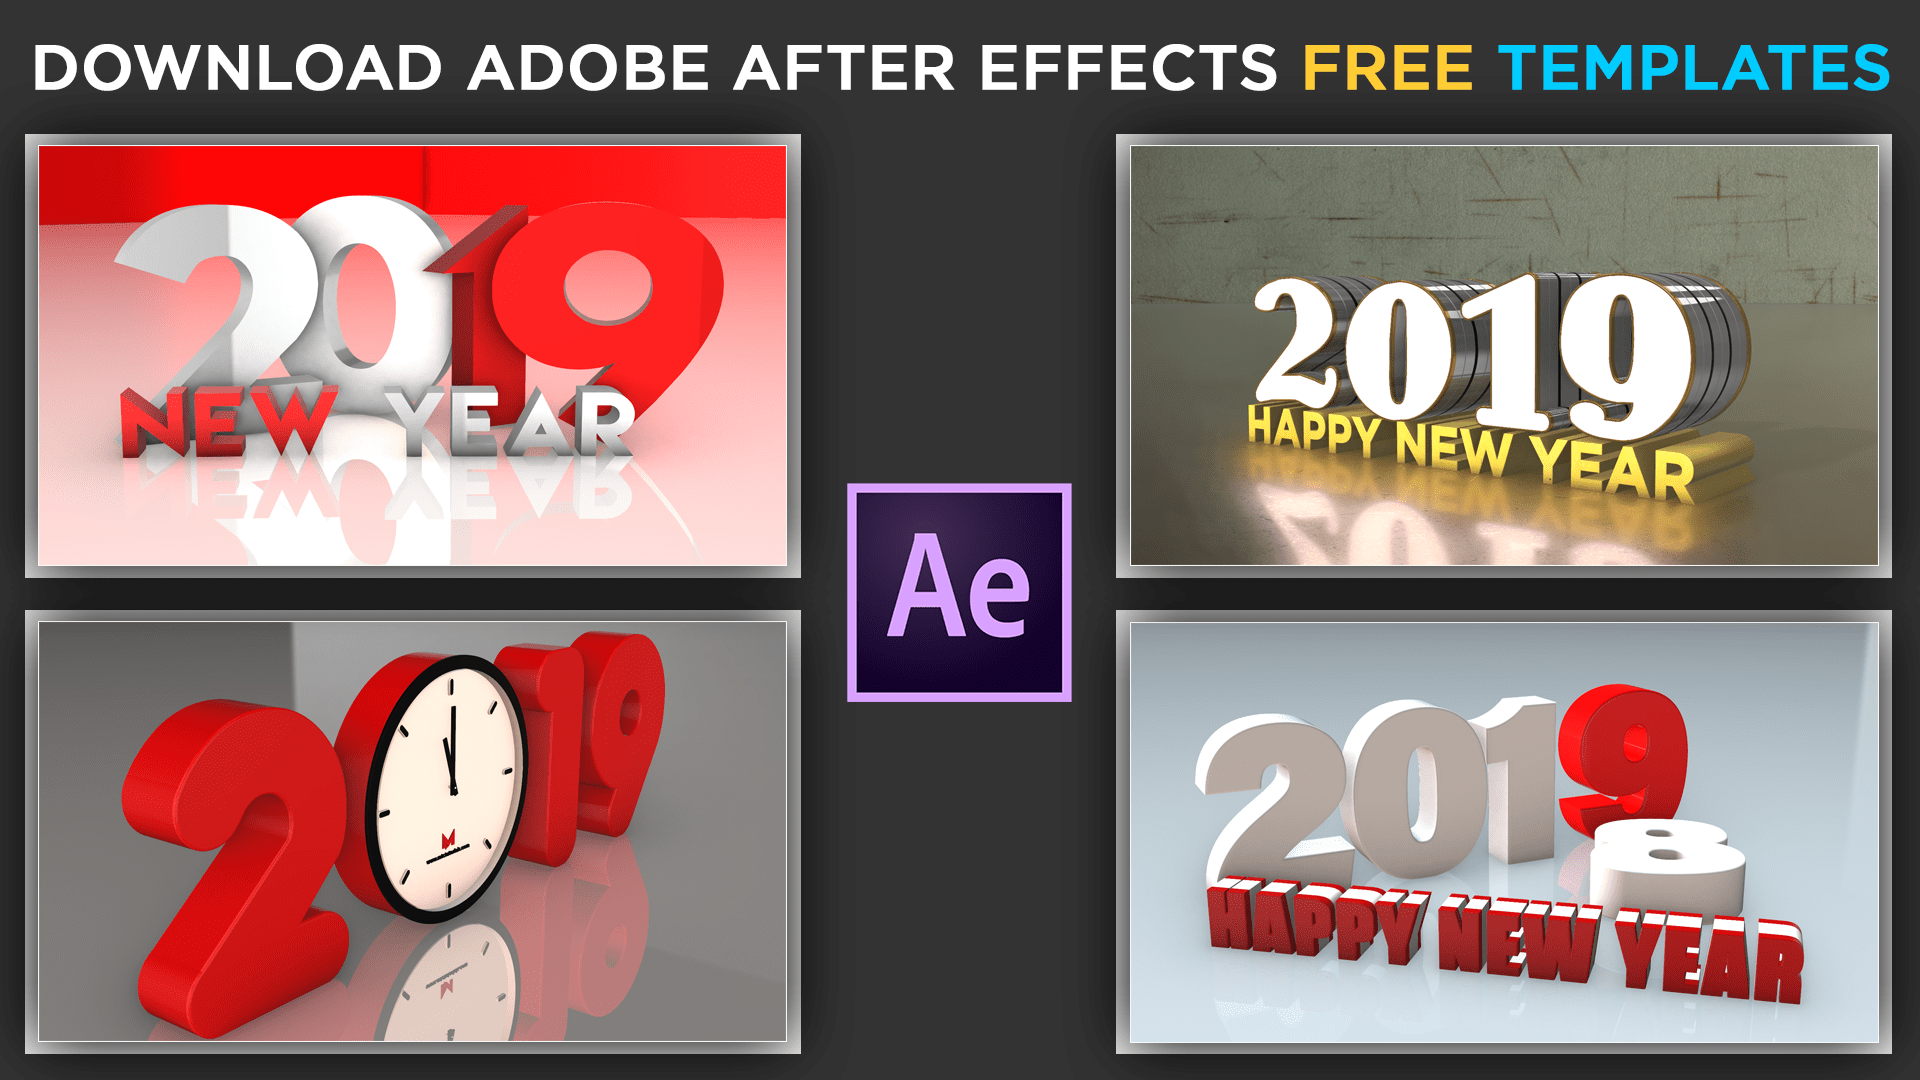 Happy New Year 2019 3D Animations Download Free Adobe After Effects Projects by mtc tutorials